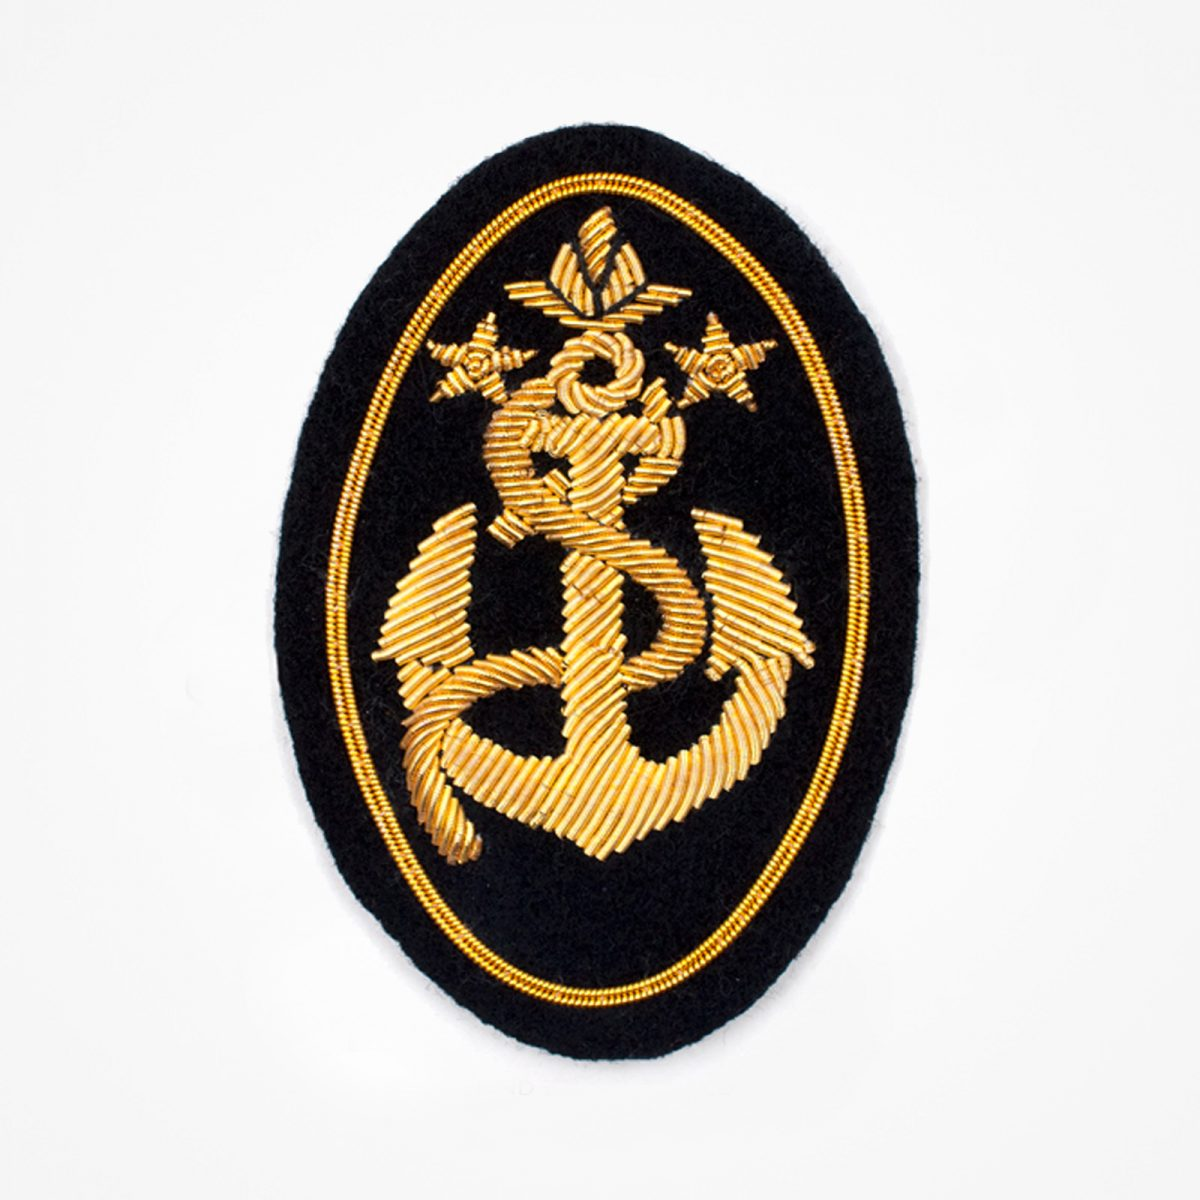 Navy Anchor - Navy Anchor Embroidered patchFashionable 3D embroidered lookMade by skilled artisansBullion wire and silk thread hand Stitched on Black color FeltAvailable in gold and silver colorsSize = 75mm height x 55mm widthsew-on backing: Perfect for caps, sports jacket, leather jackets, blazer coat, Blazer Pocket, shirts uniforms, Accessories and many MorePin backing: easy to removable 5